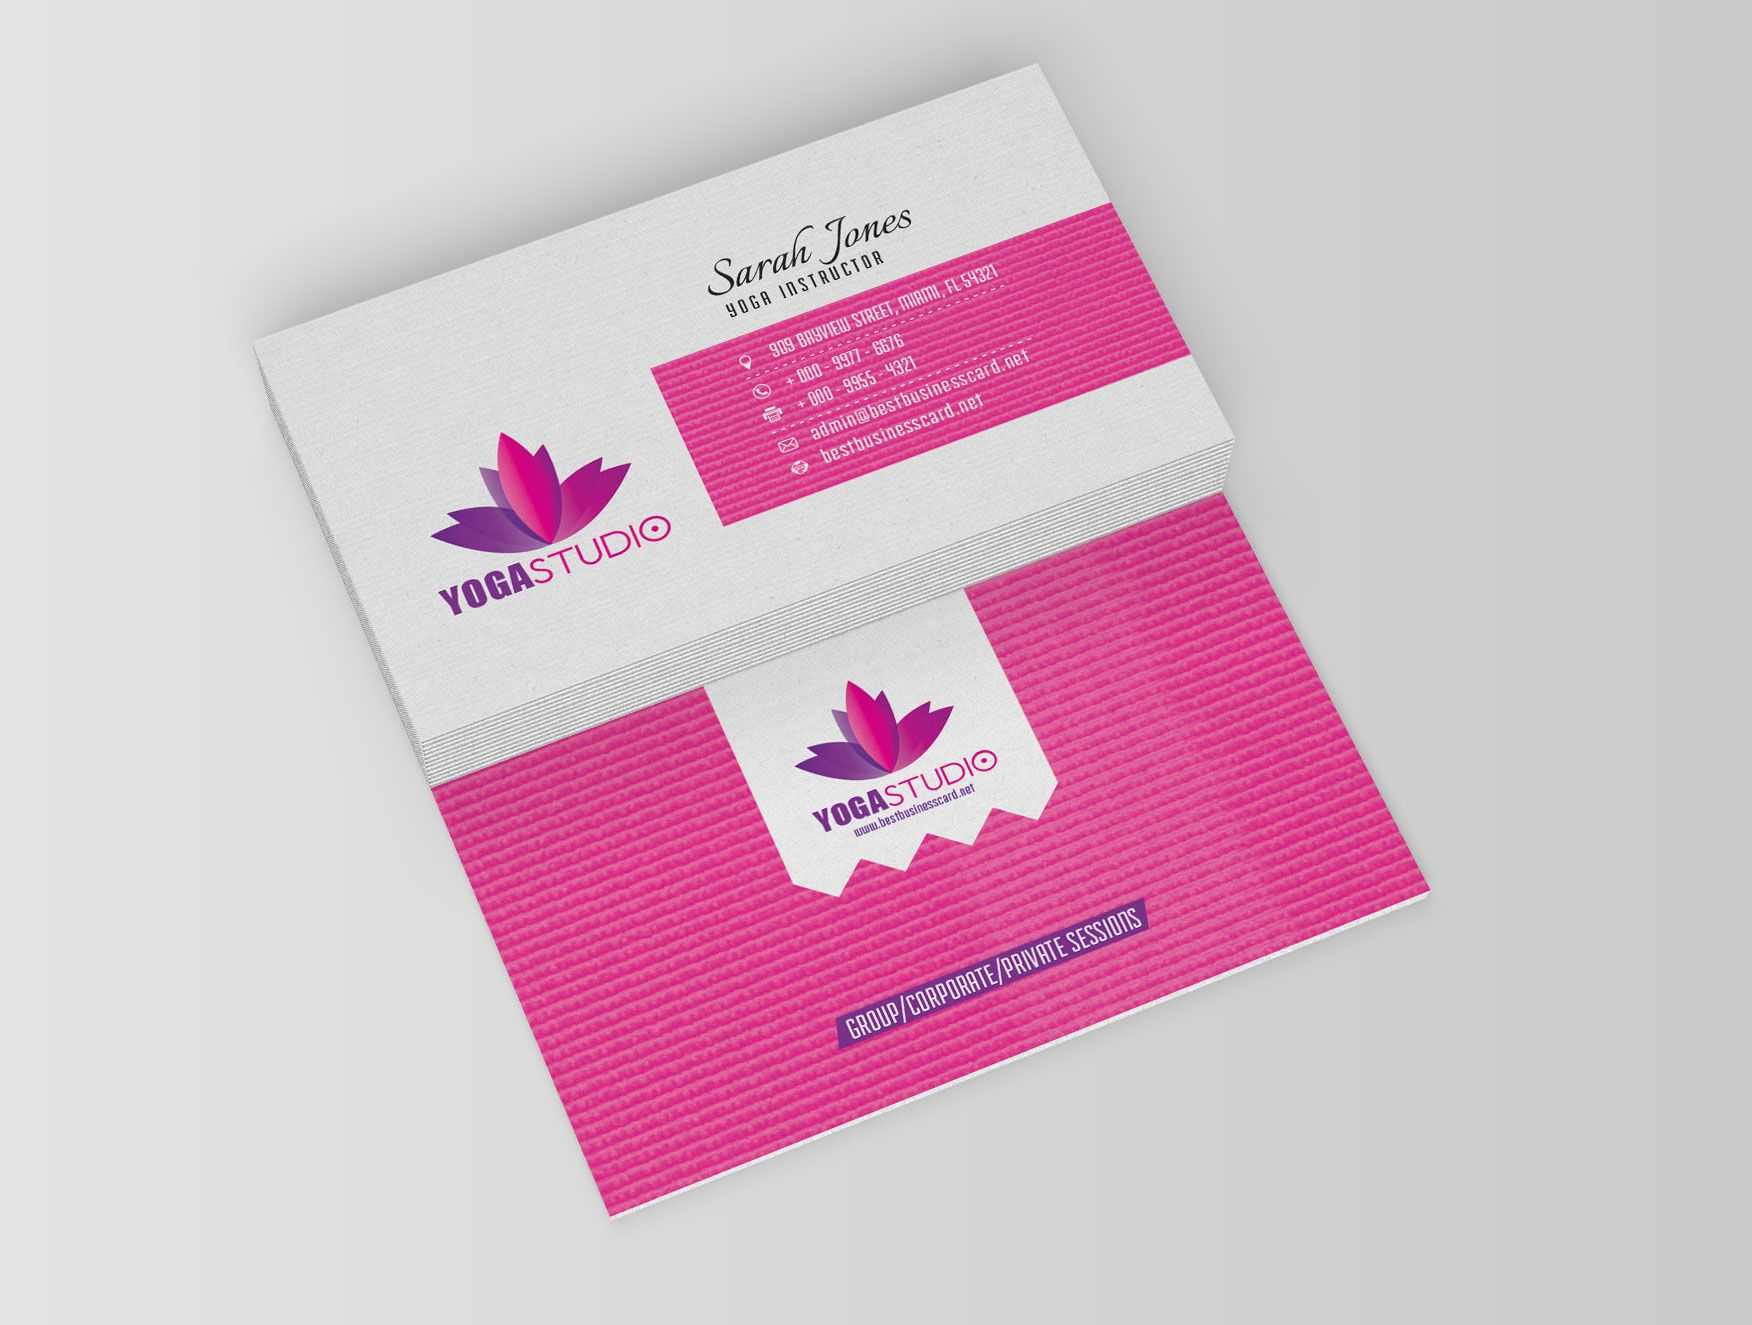 Yoga Business Cards: Free PSD Templates | Mobiles | Pinterest | Psd ...